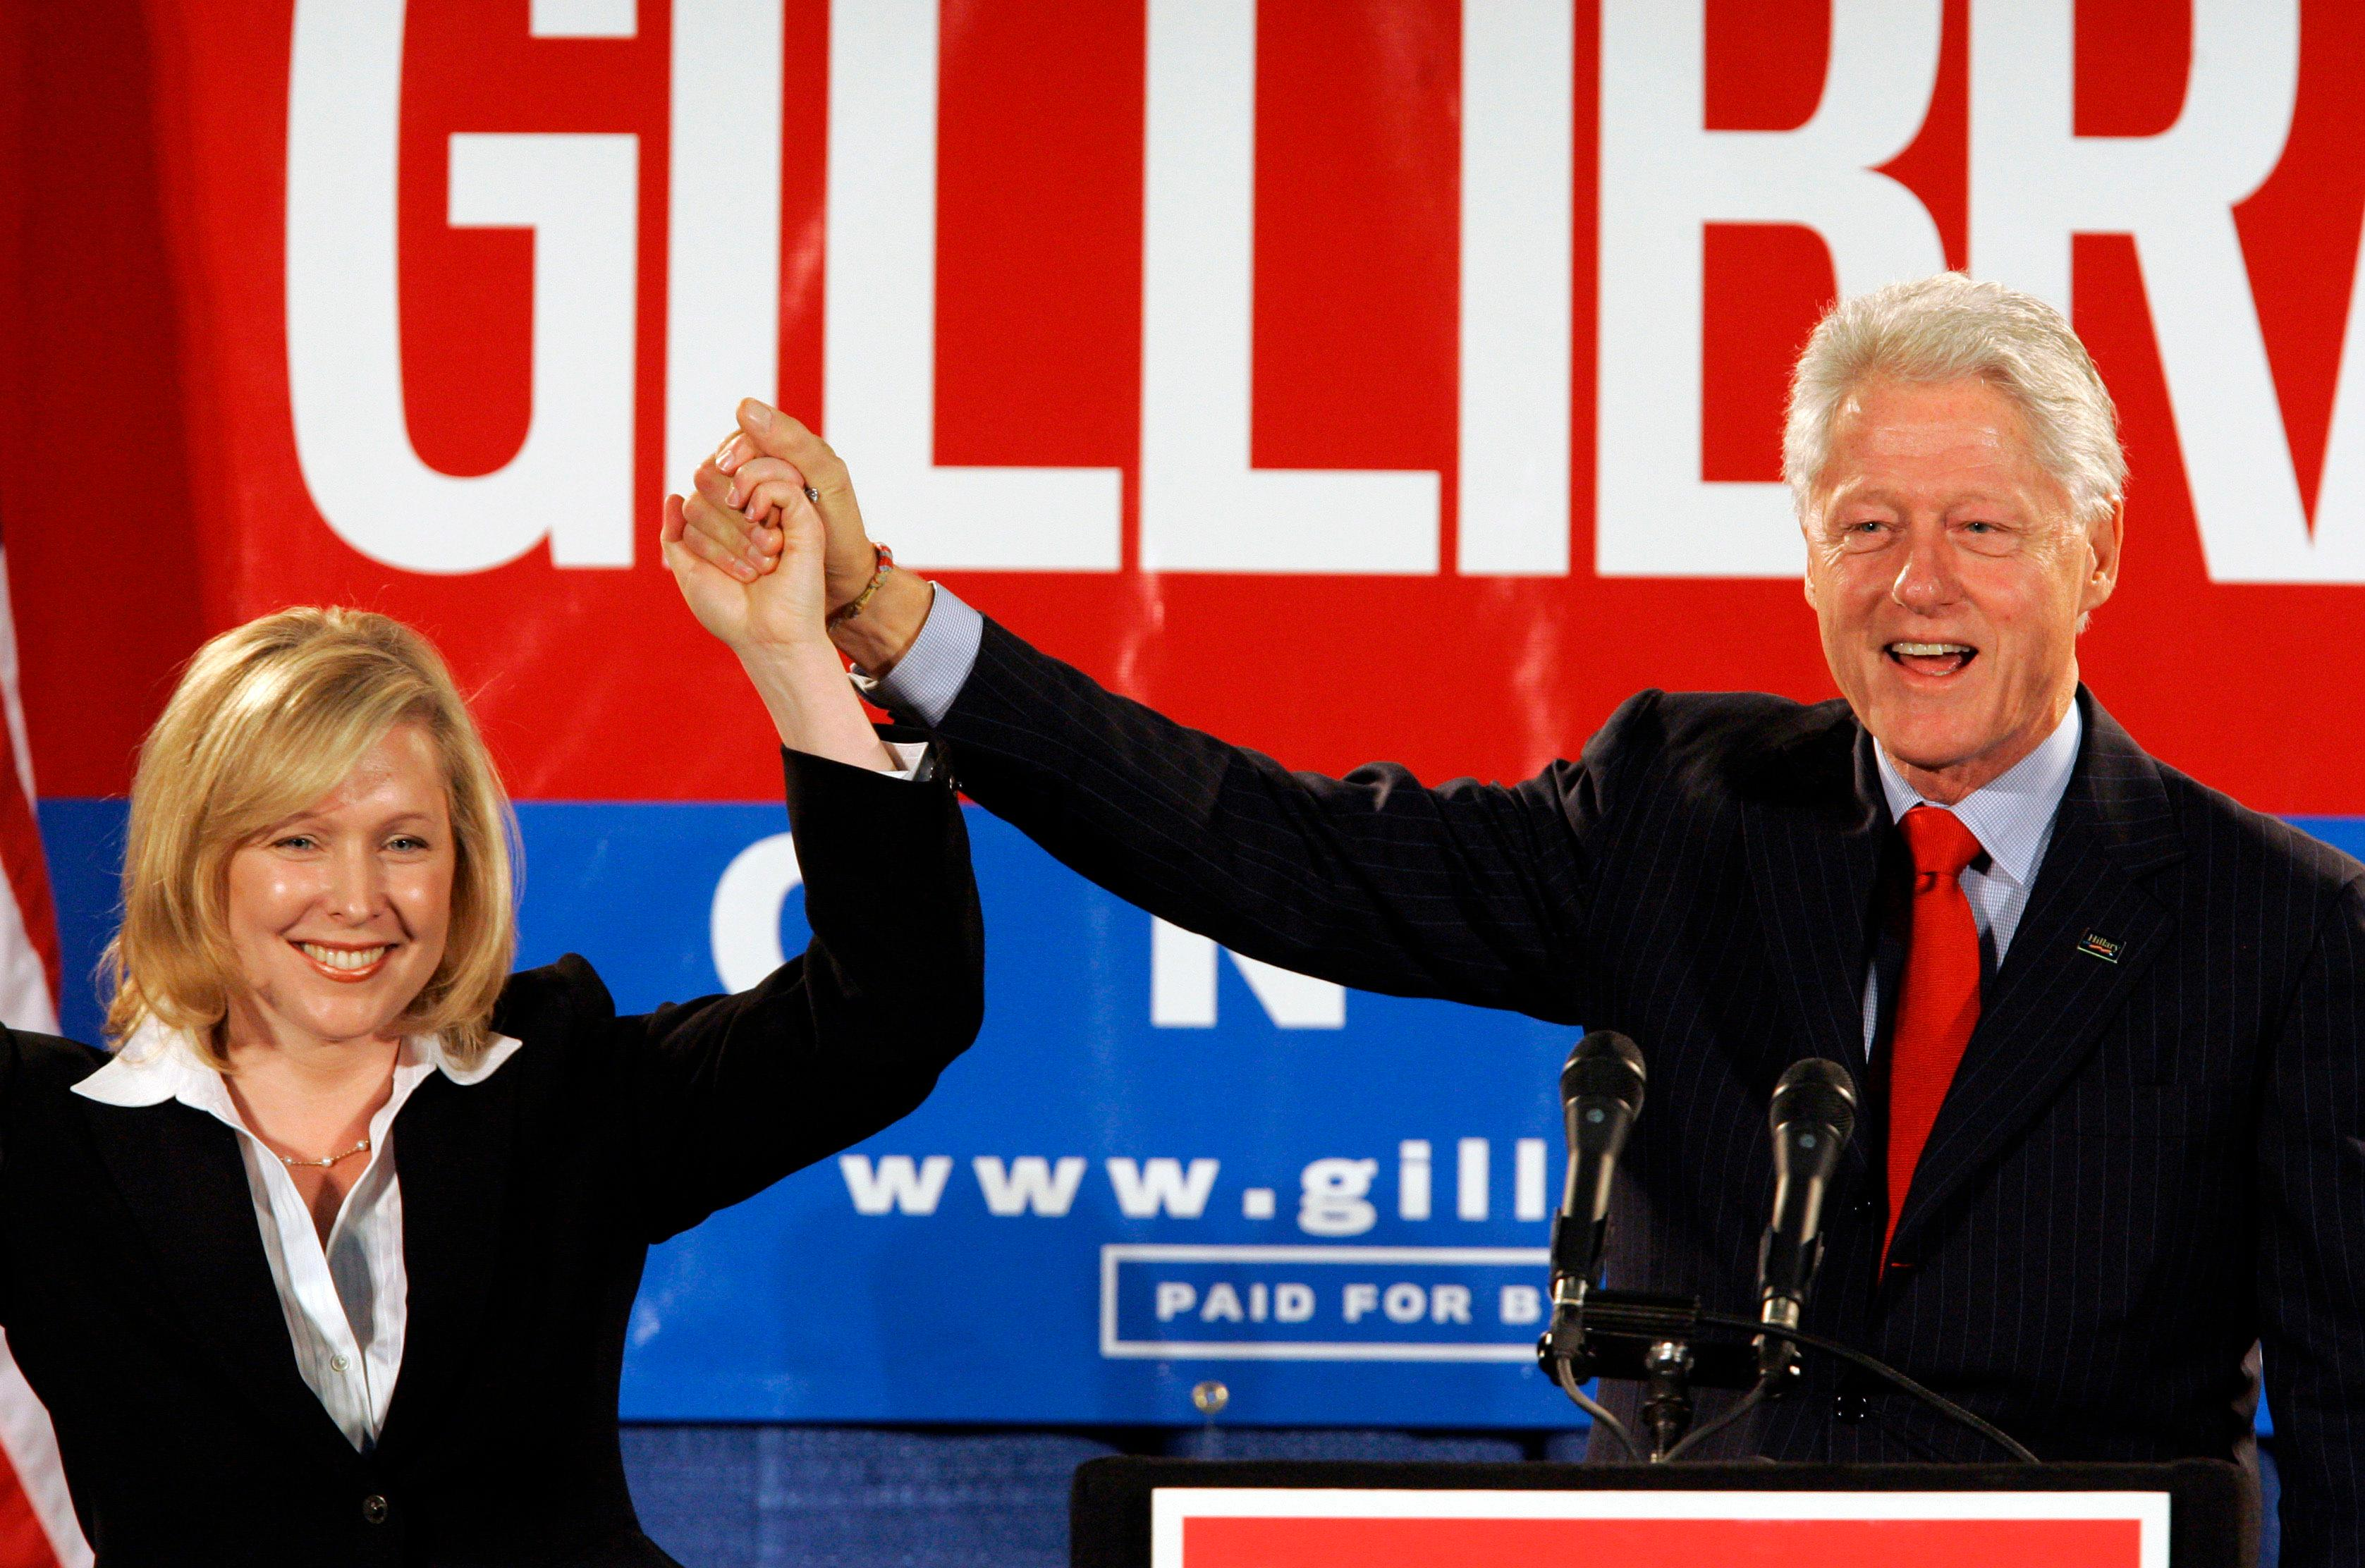 FILE- In this Oct. 26, 2006 file photo, former President Bill Clinton holds up the hand of Kirsten Gillibrand, a Democratic lawyer who is running against three-term Rep. John Sweeney, R-N.Y., at a rally in Albany, N.Y.{&amp;nbsp;} (AP Photo/Jim McKnight, File)<p></p>